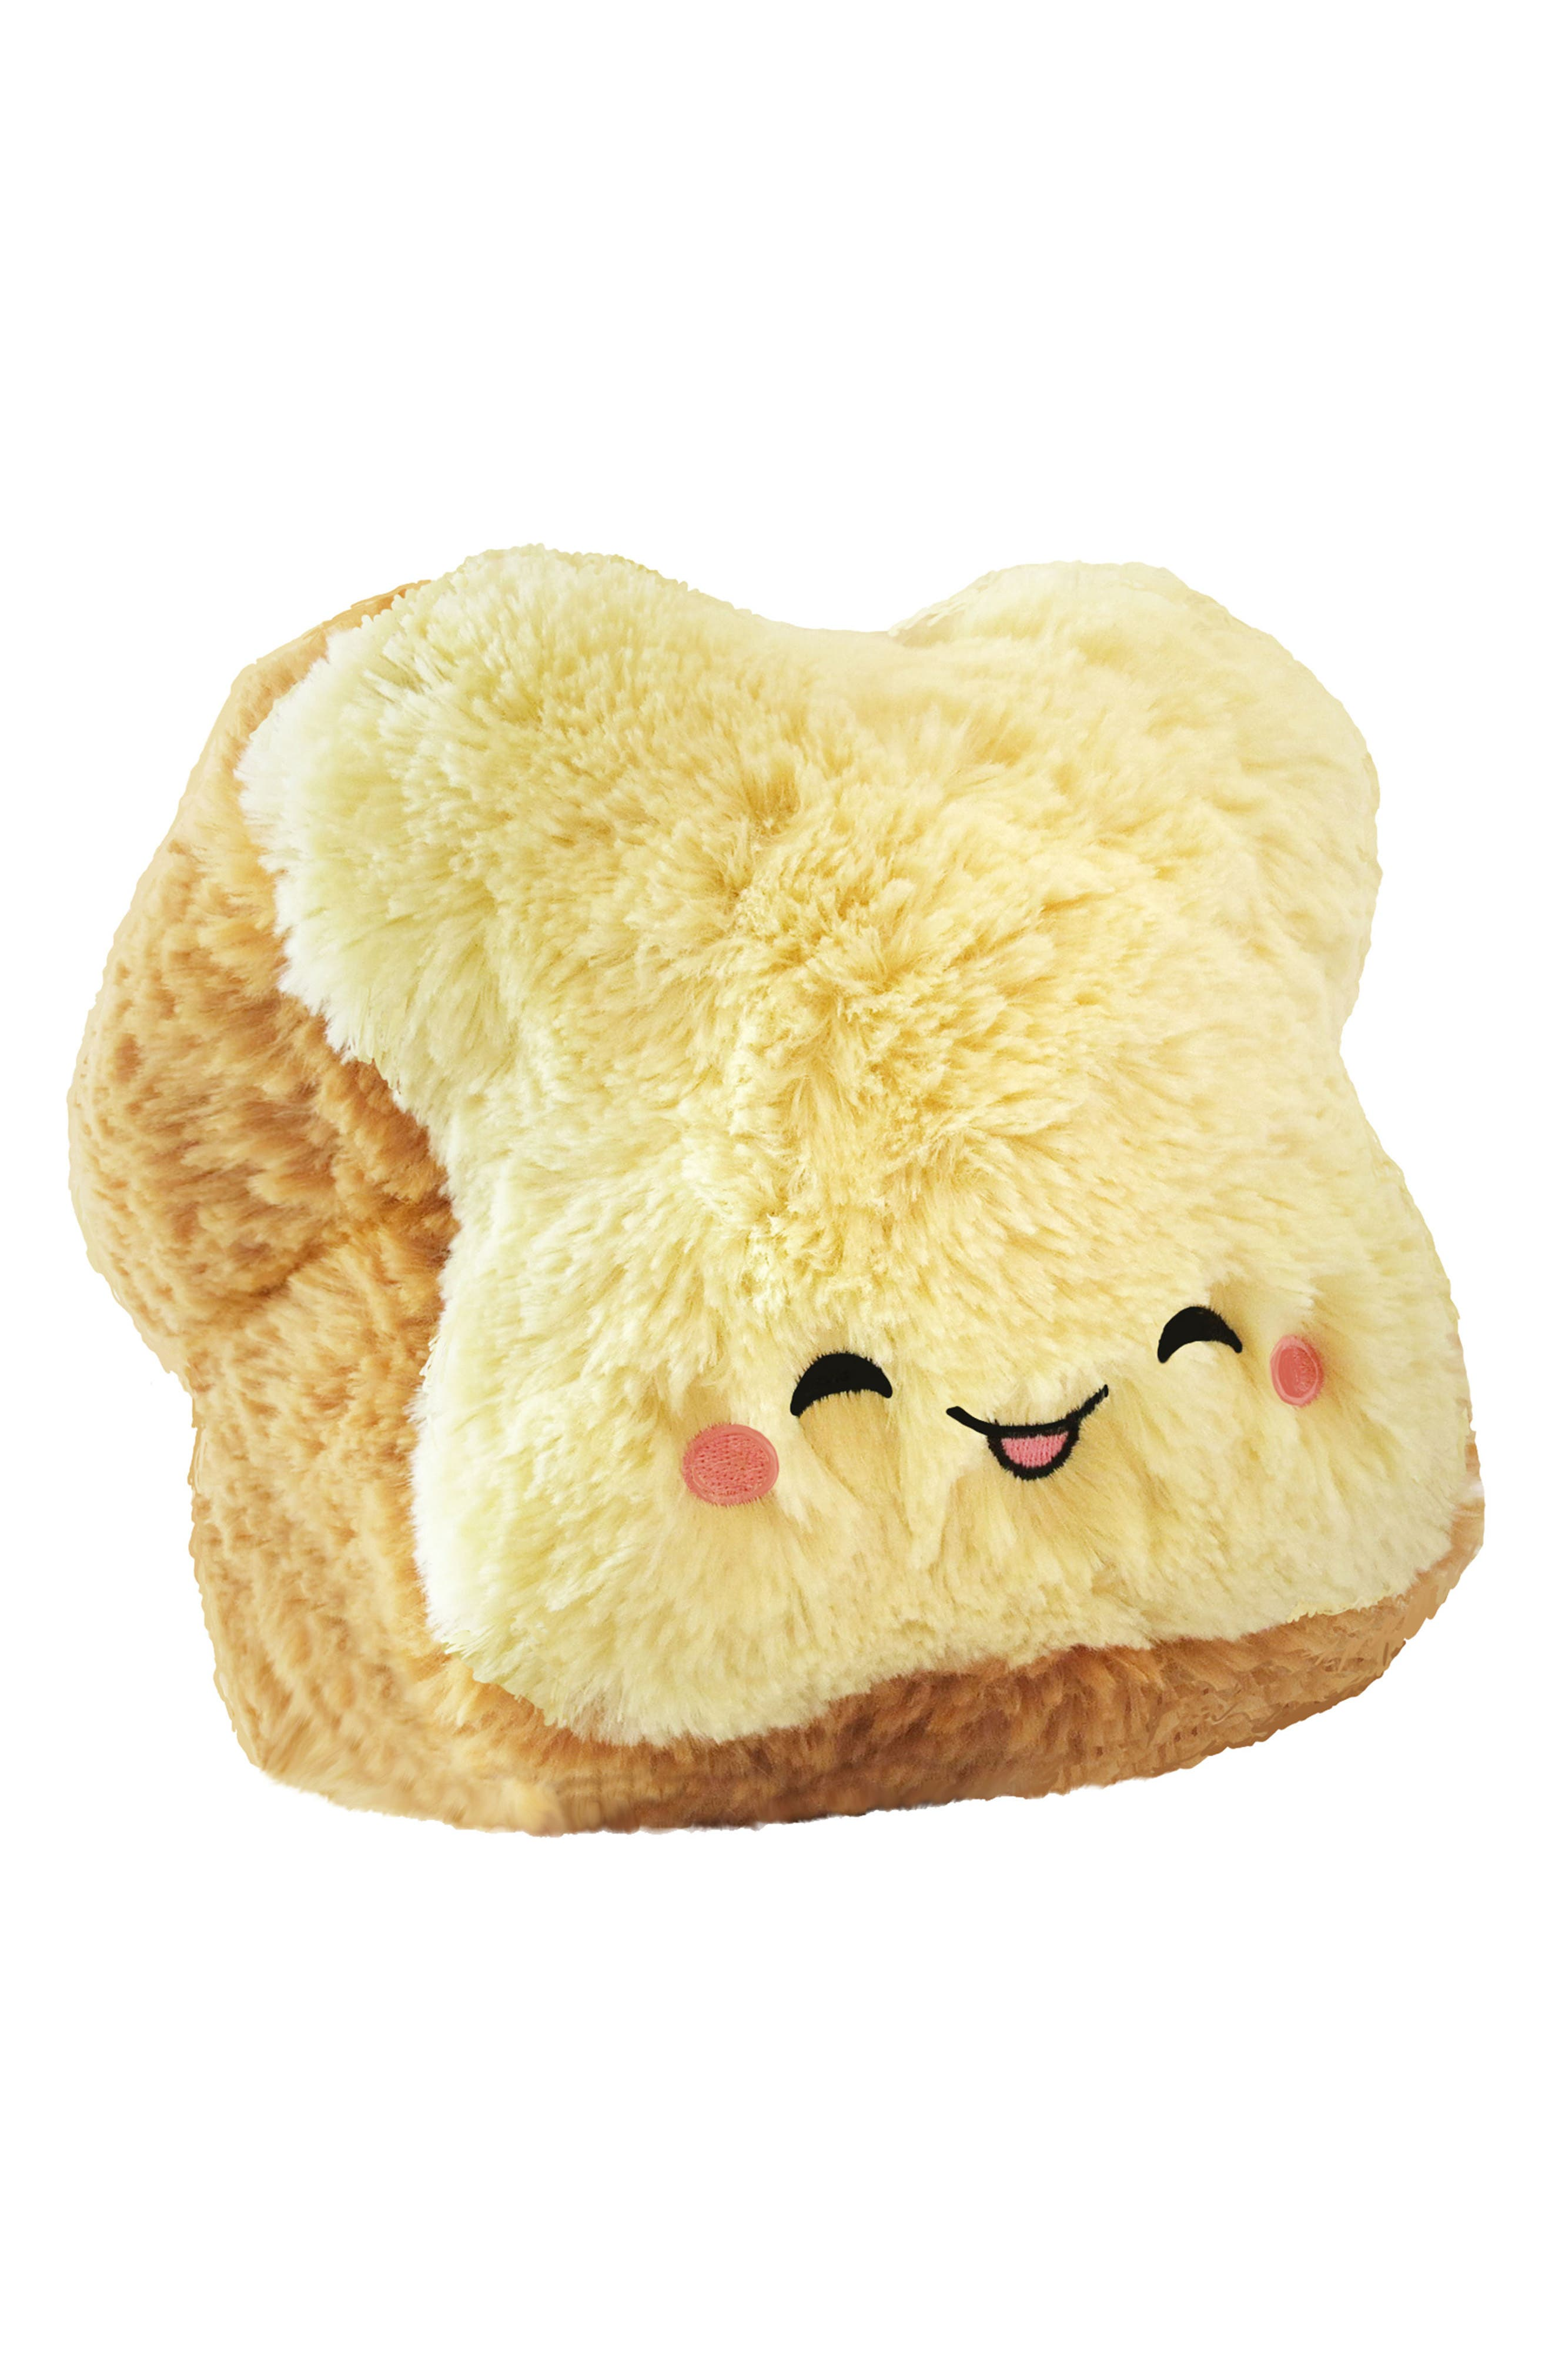 Mini Loaf of Bread Stuffed Toy,                             Main thumbnail 1, color,                             200